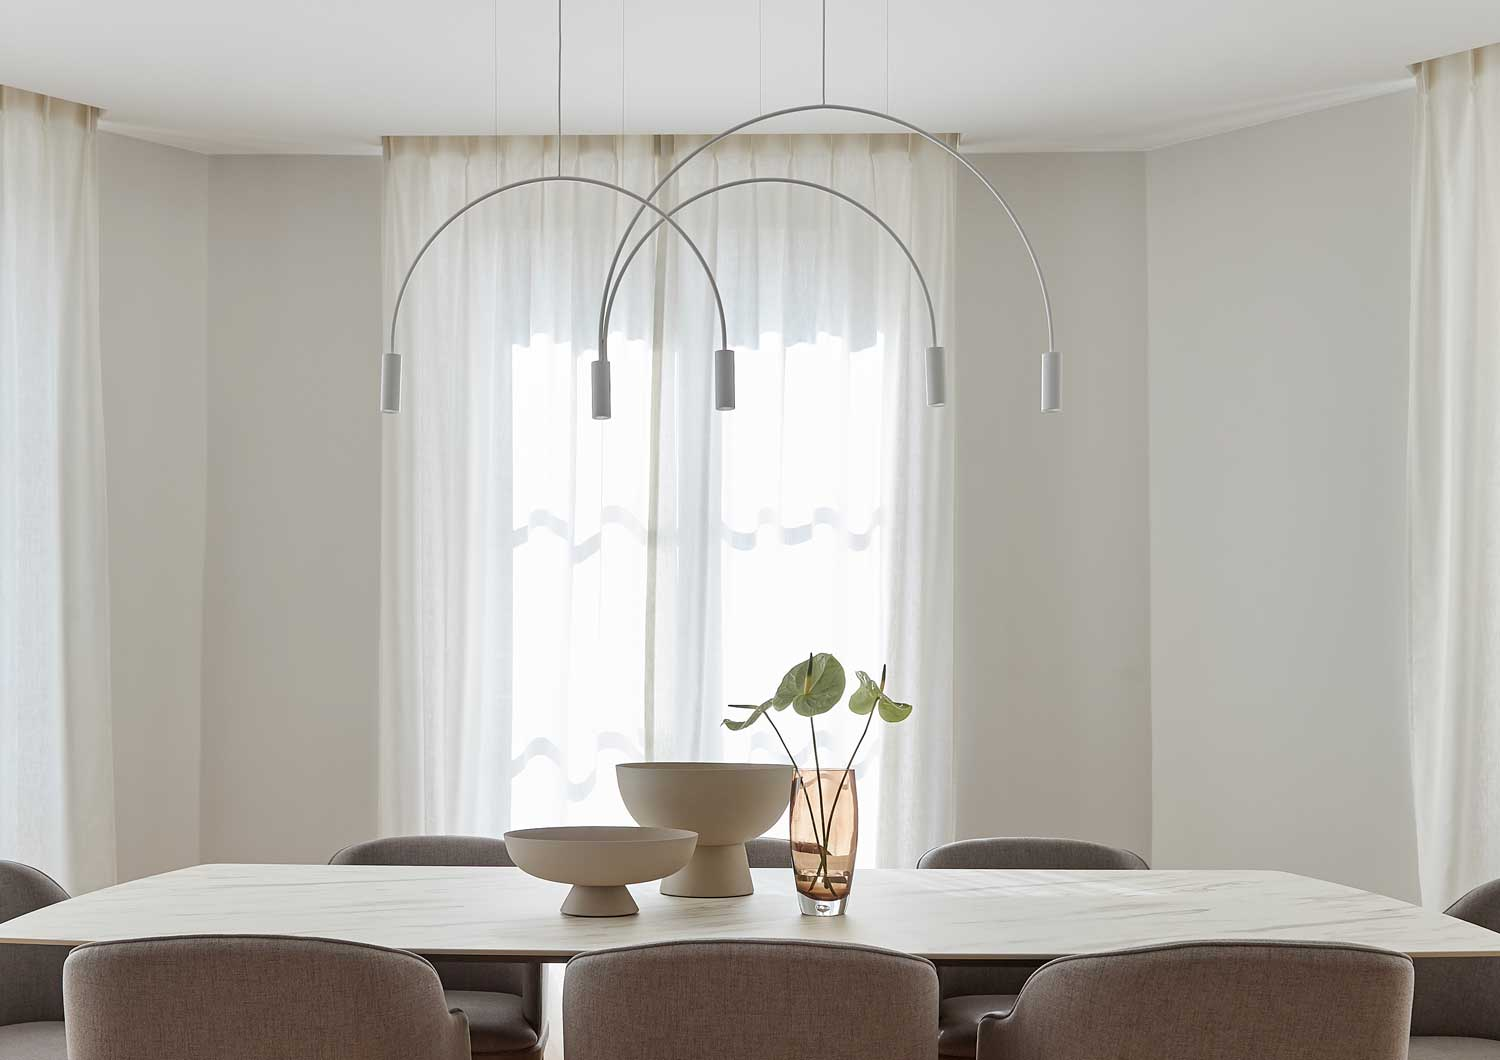 07 Volta Residential Project By Lichelle Silvestry Interiors Paris 02